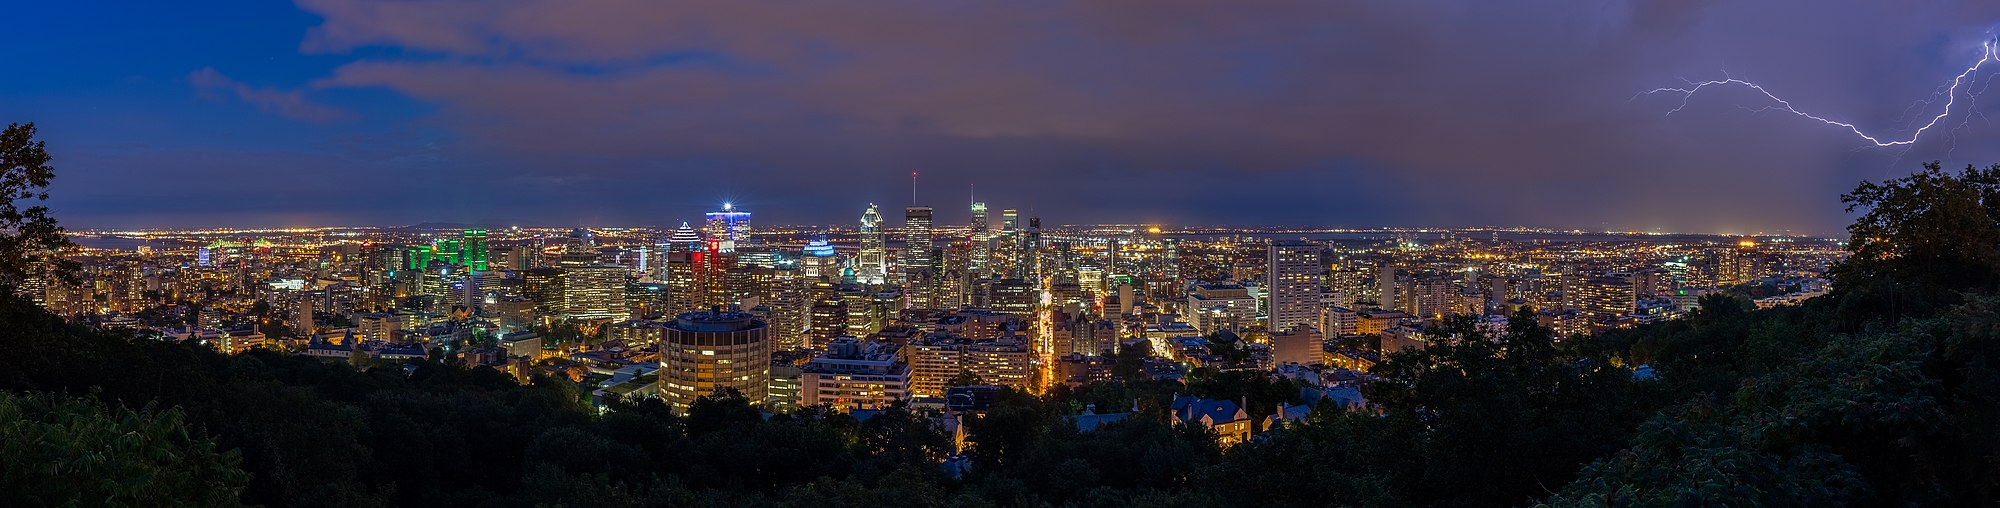 Panoramic view of the city of Montreal in a stormy day from Mount Royal, Quebec, Canada.